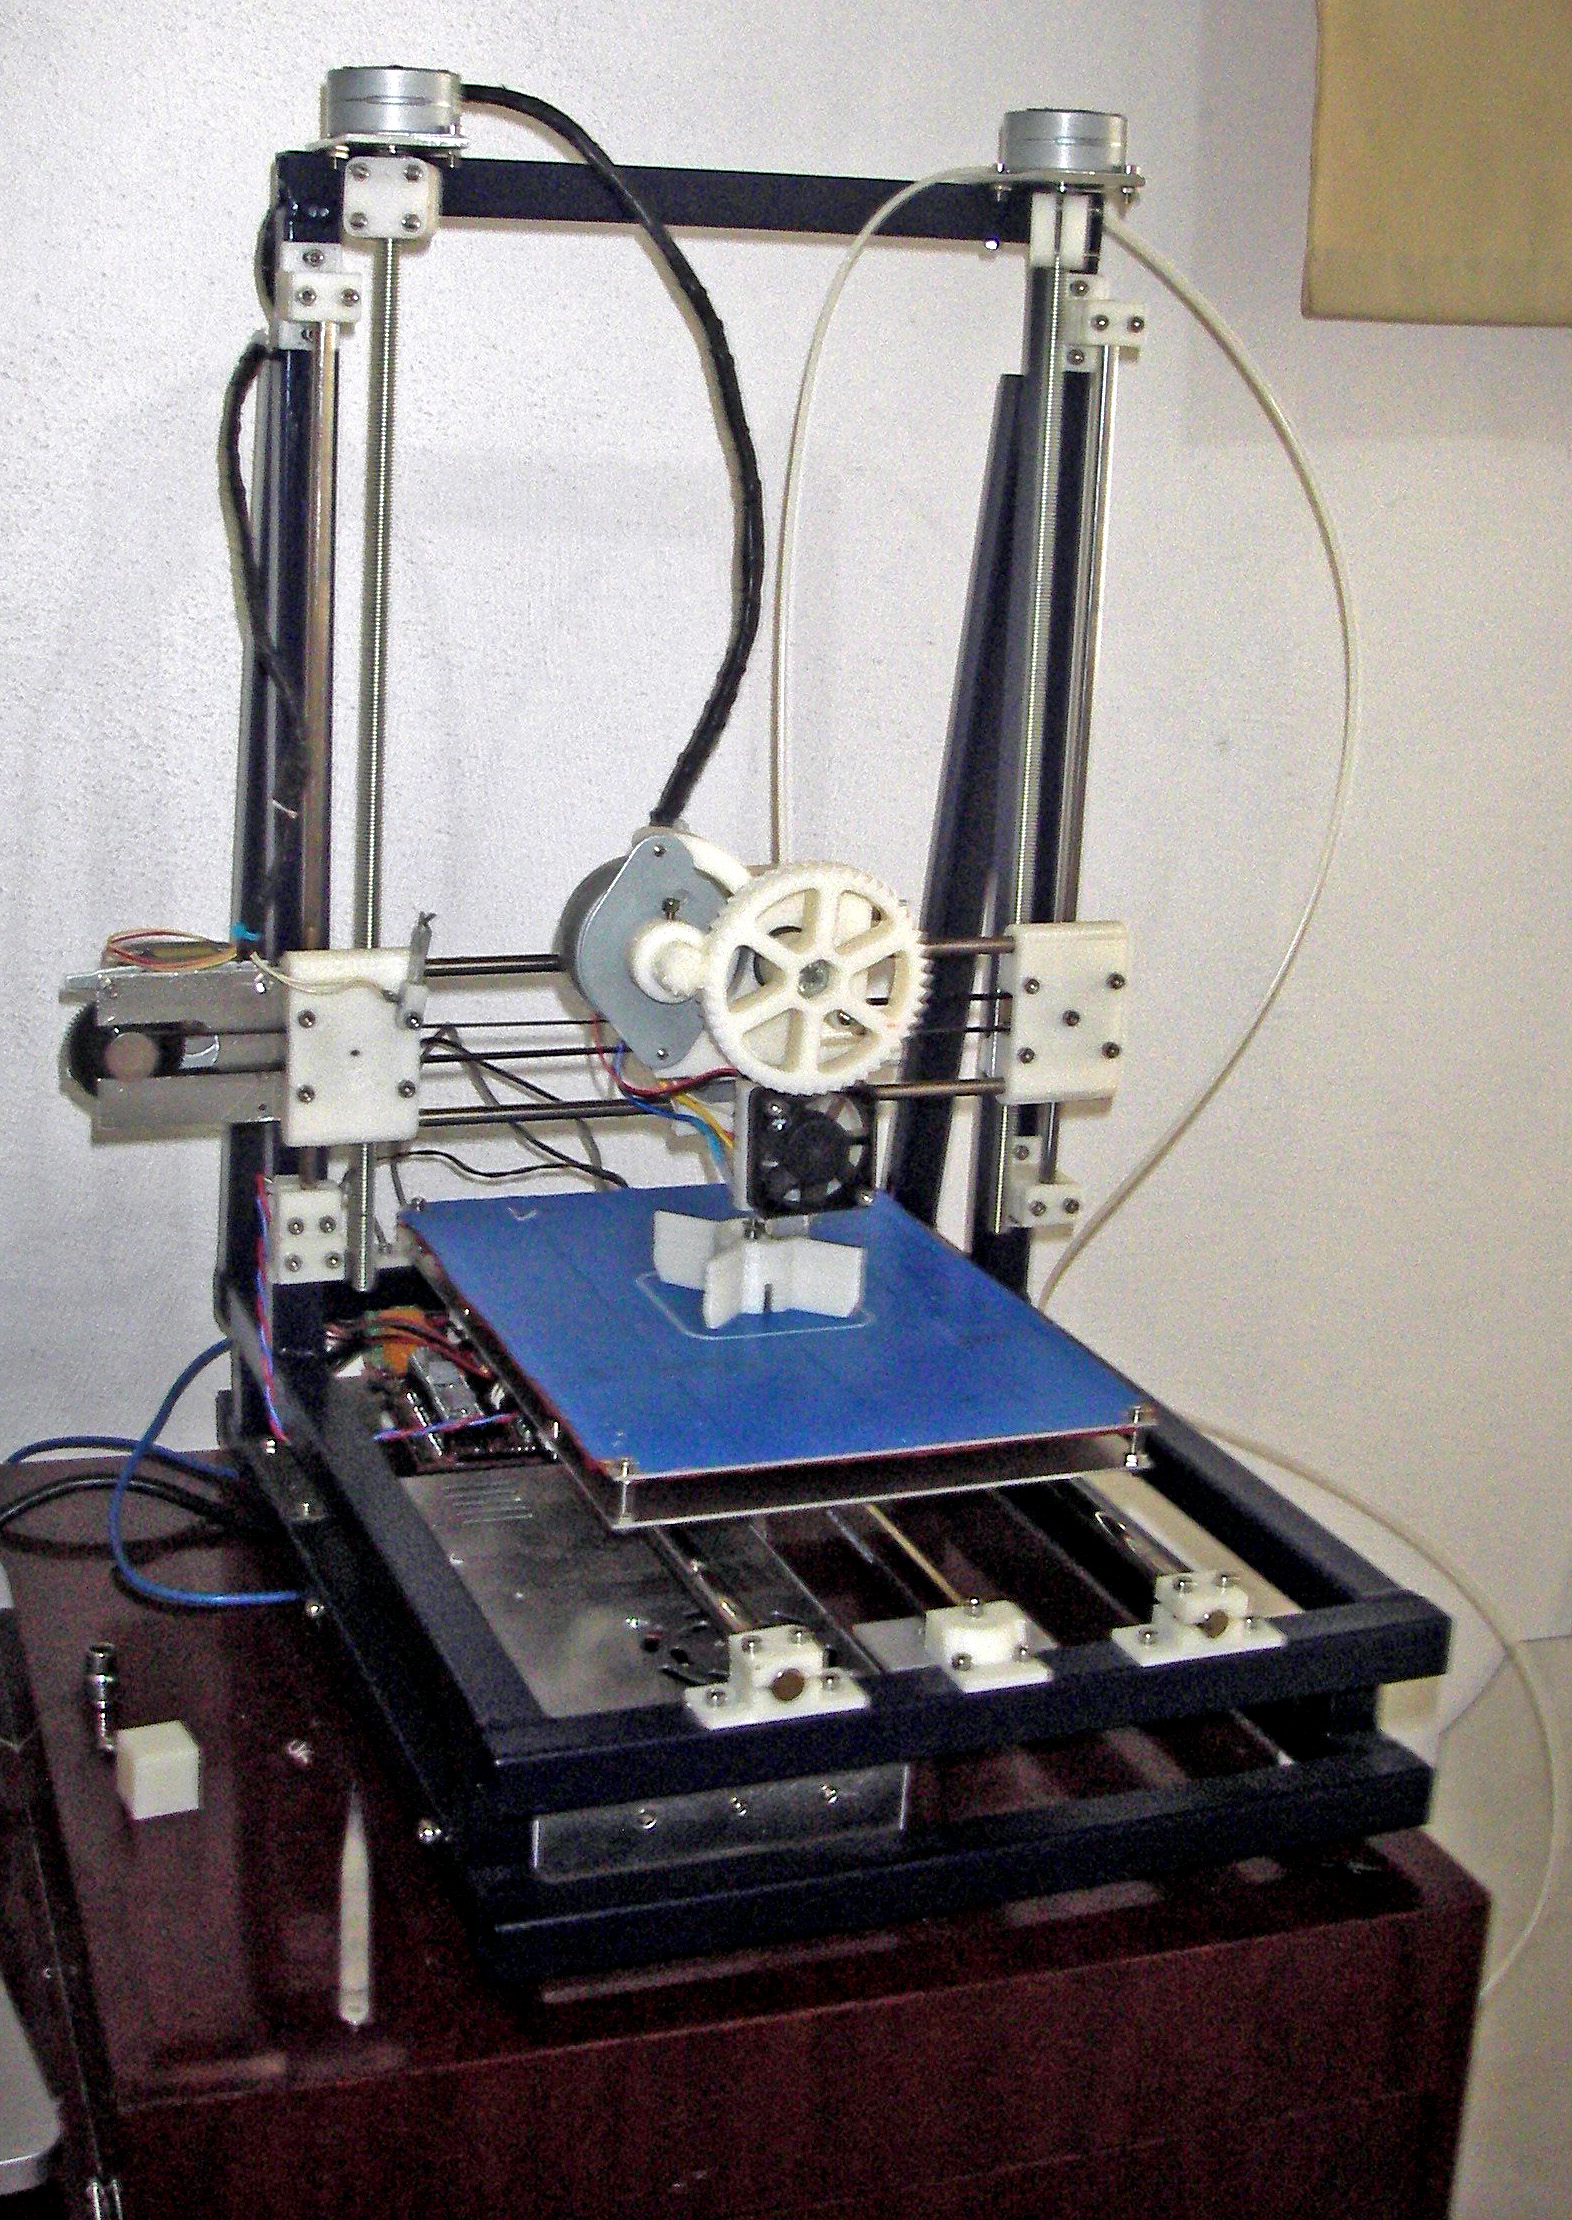 The e-waste 3D printer designed by Techfortrade